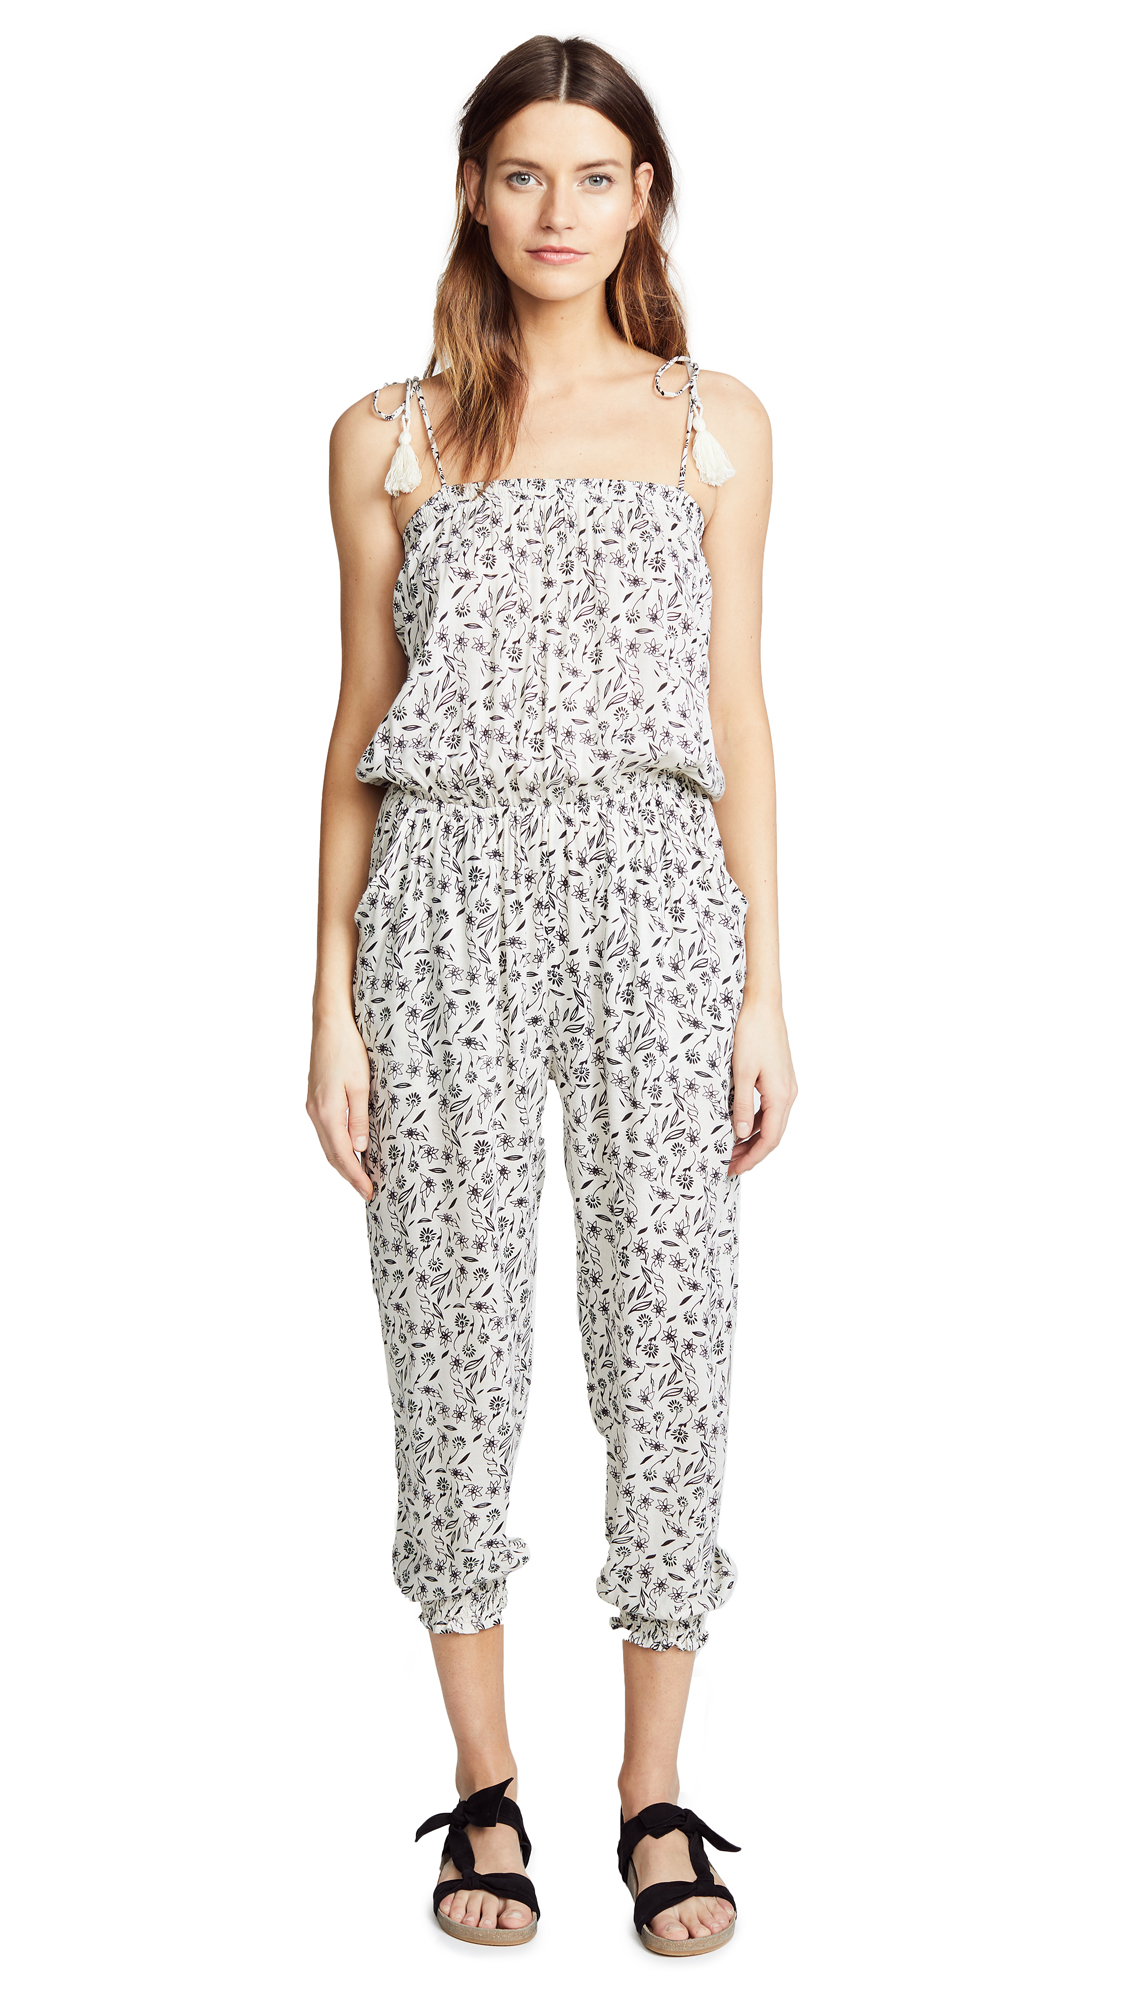 coolchange Serafina Jumpsuit In Marguerite Cream/Black